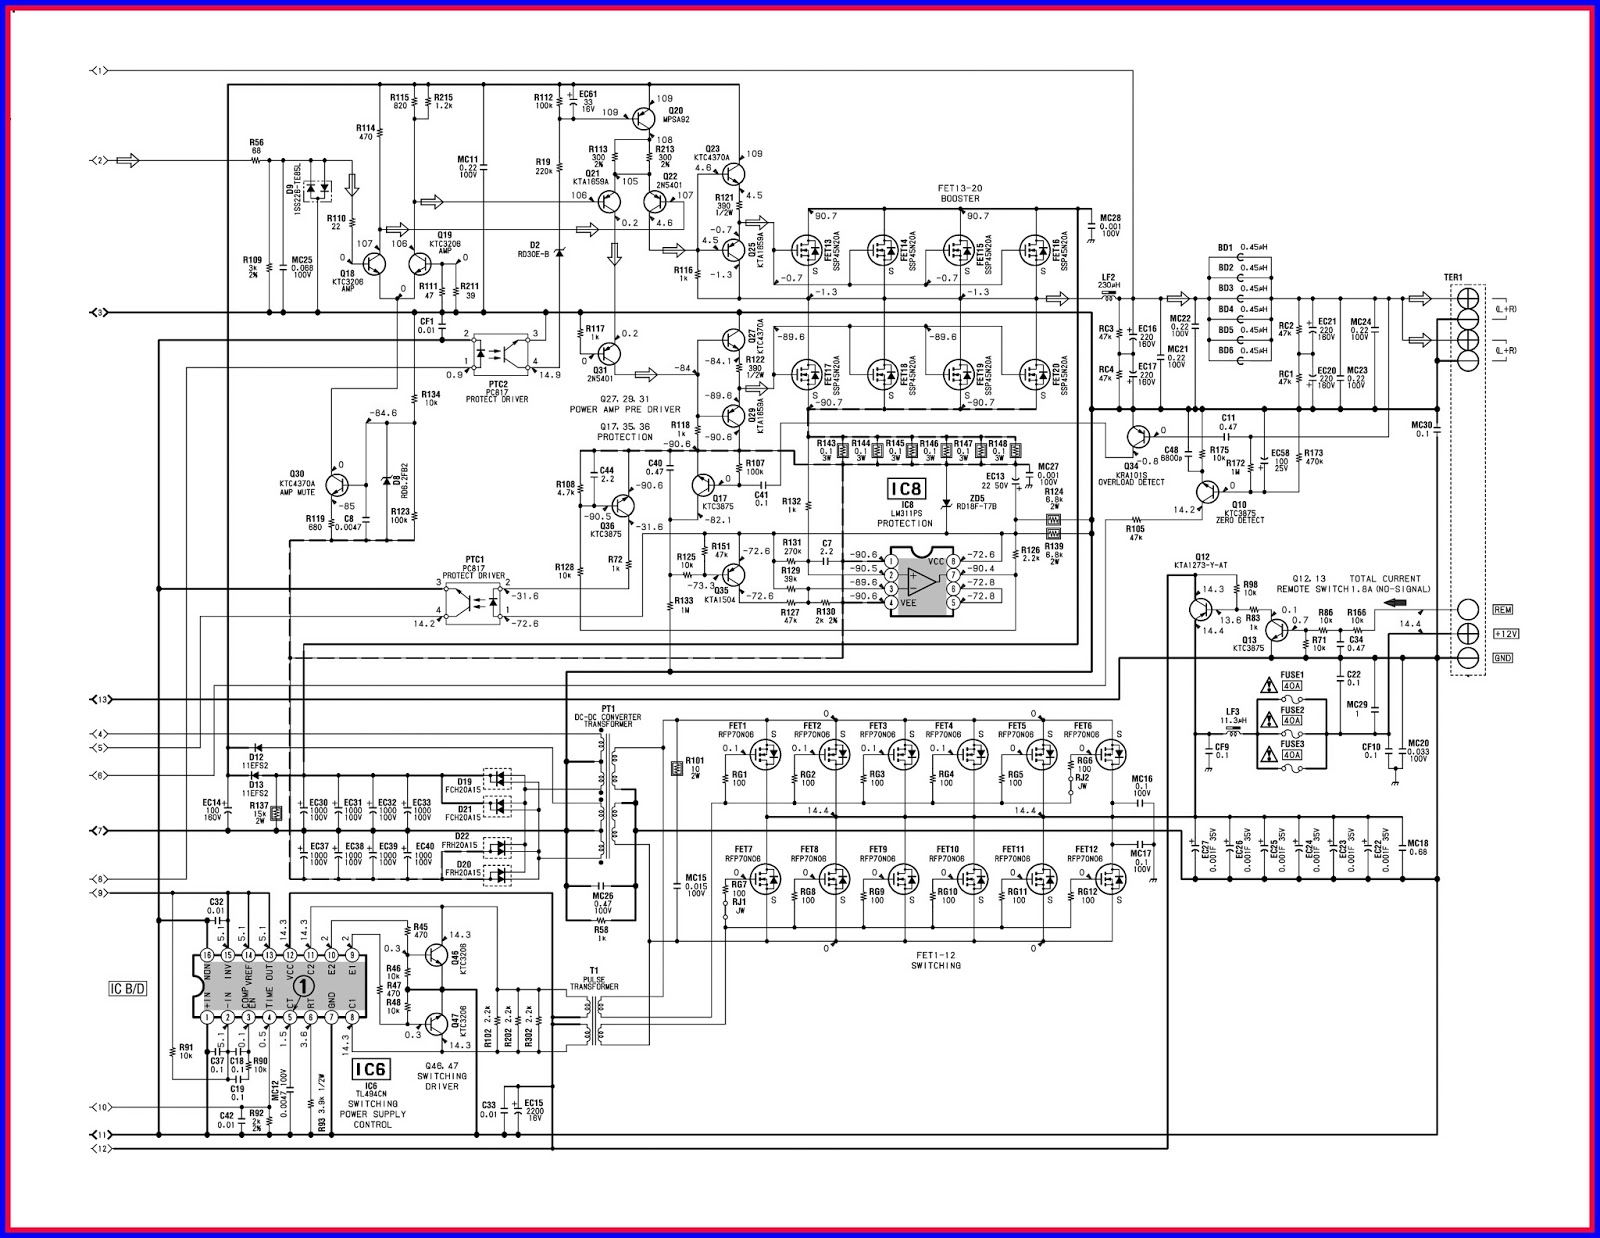 Sony Xplod Deck Wiring Diagram 3 Phase Pressure Switch 600 Watt Amp 38